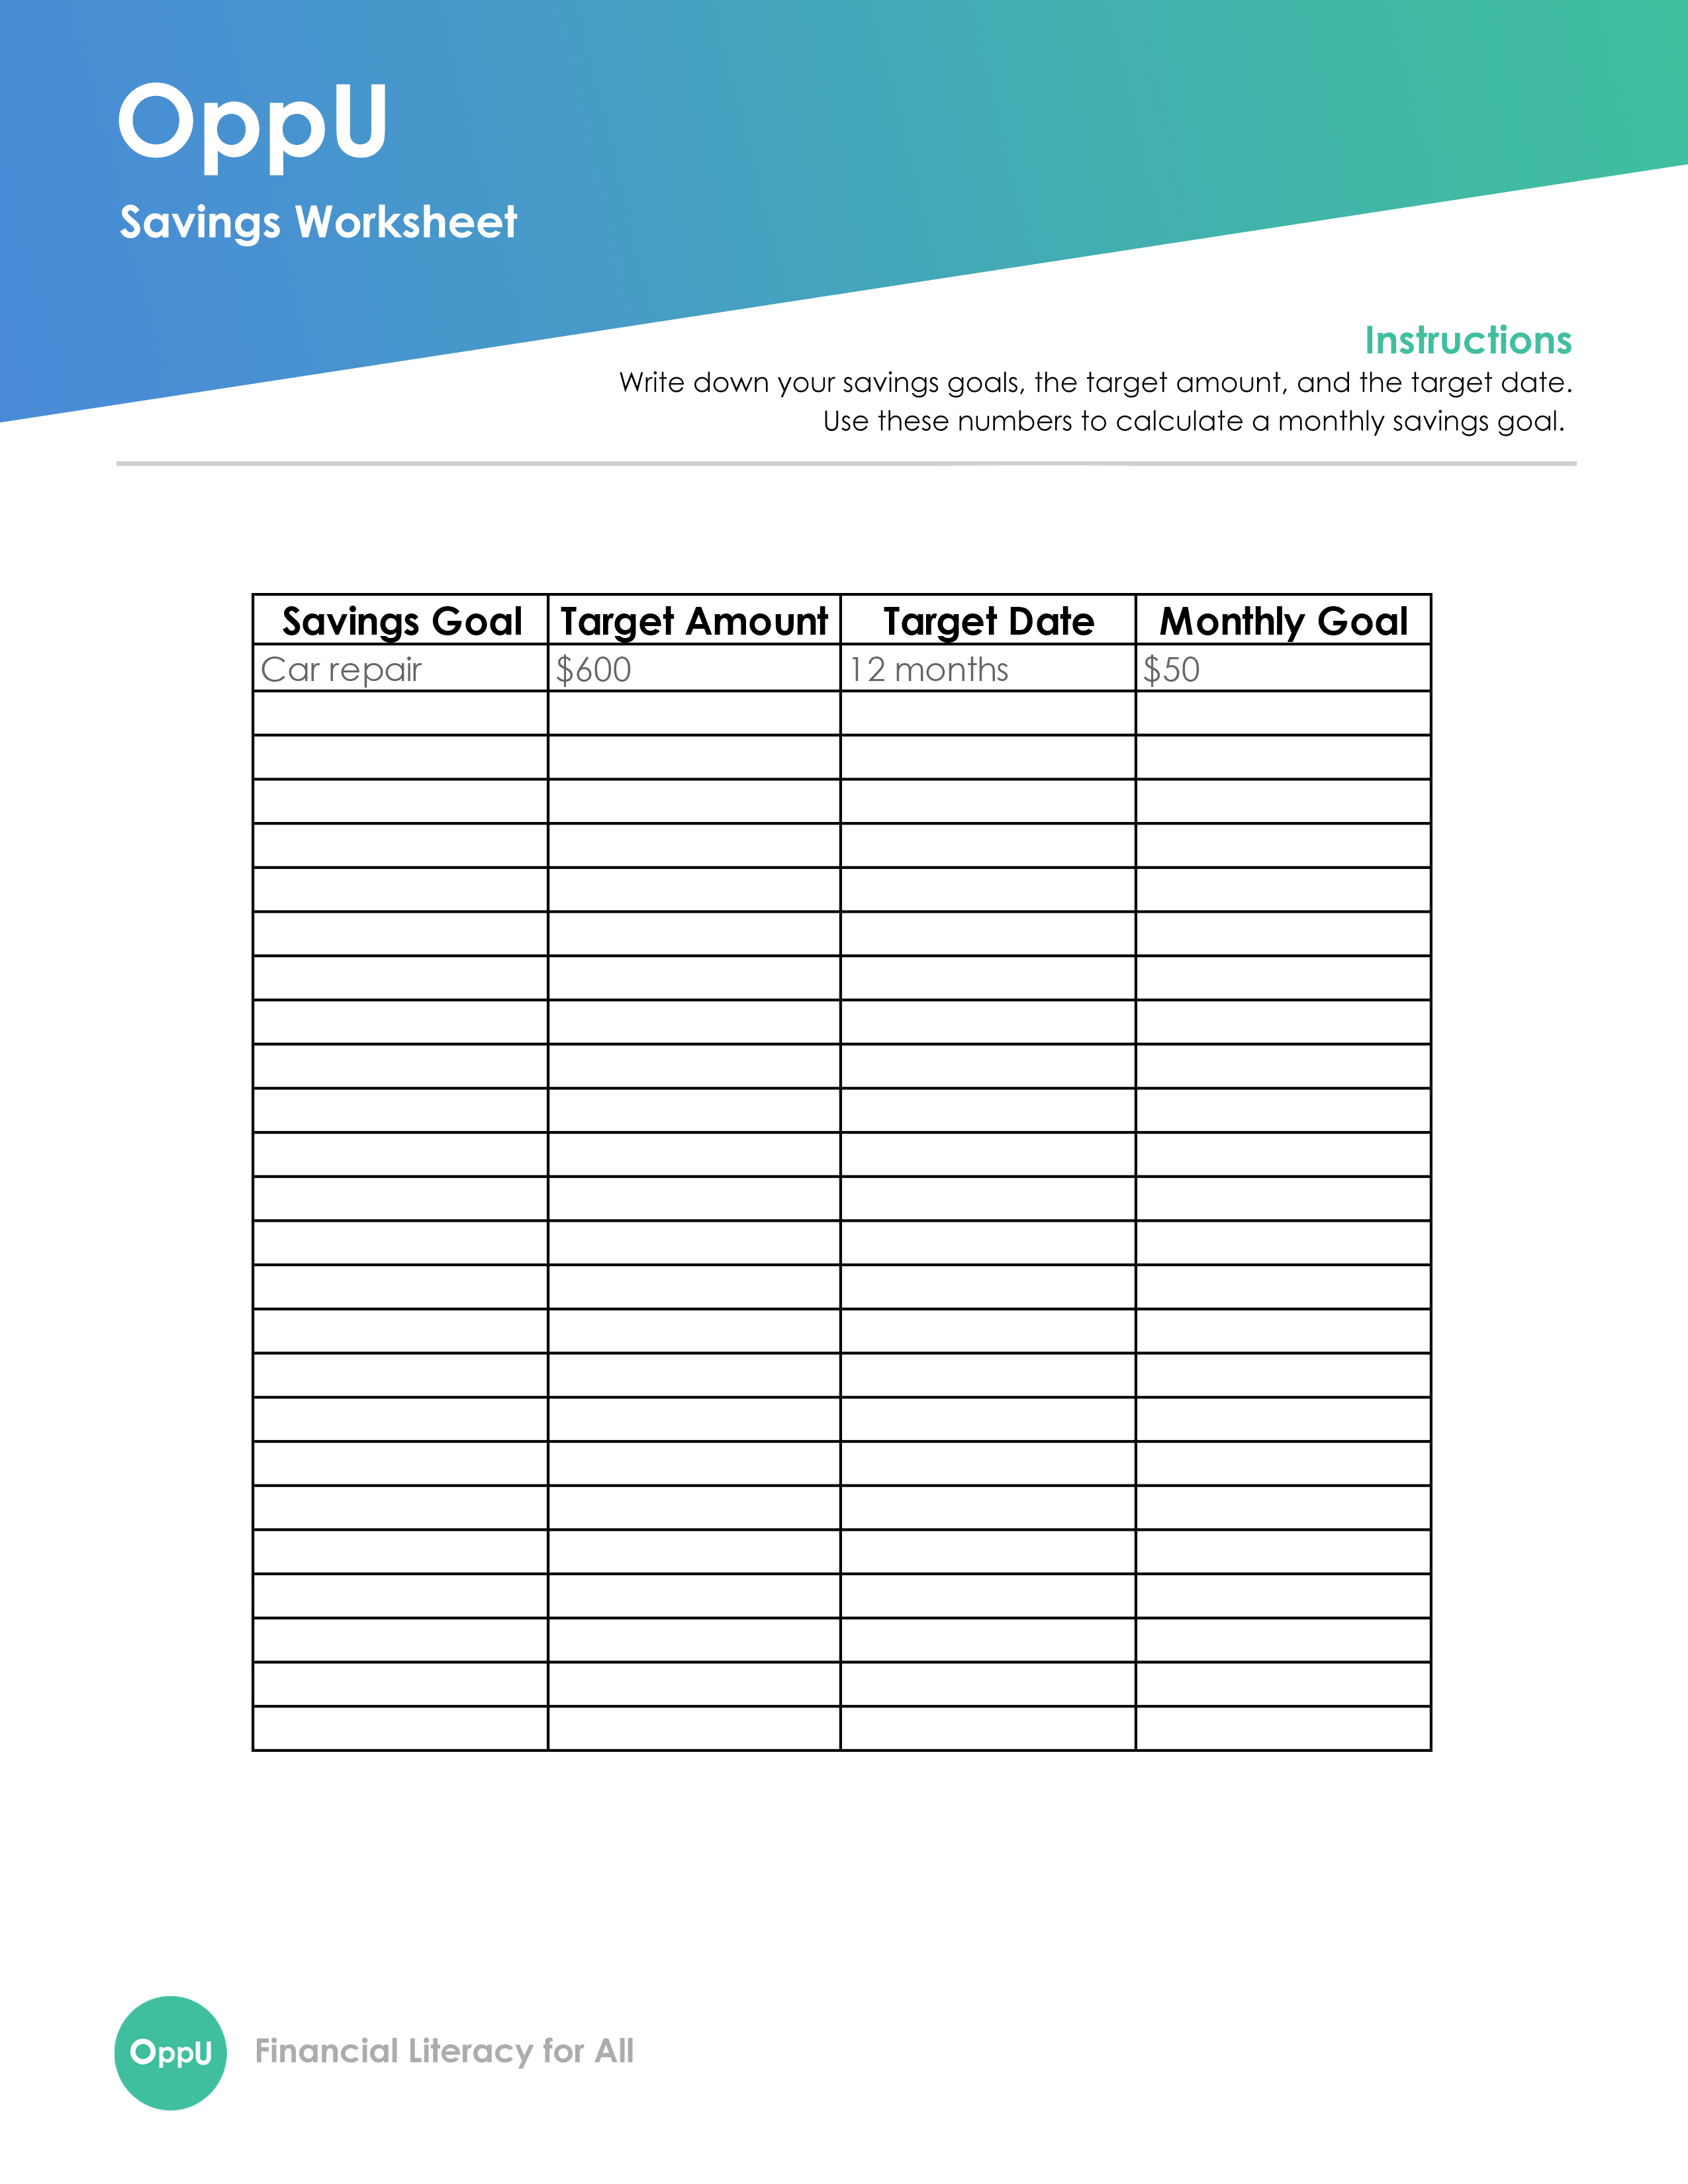 OppU Savings Goals Worksheet